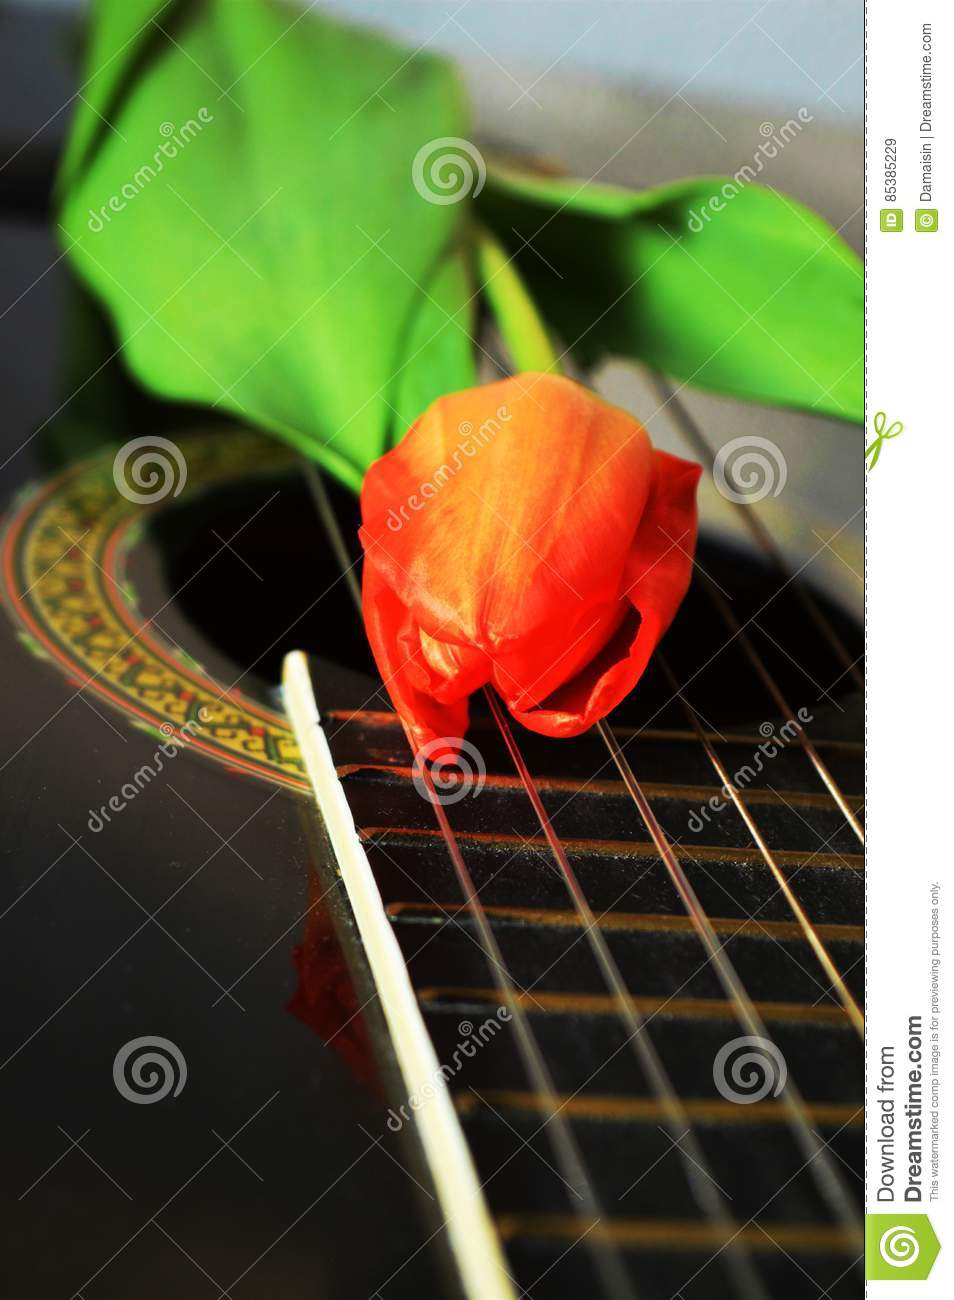 Tulip, symbol of Holland stock image  Image of songs - 85385229